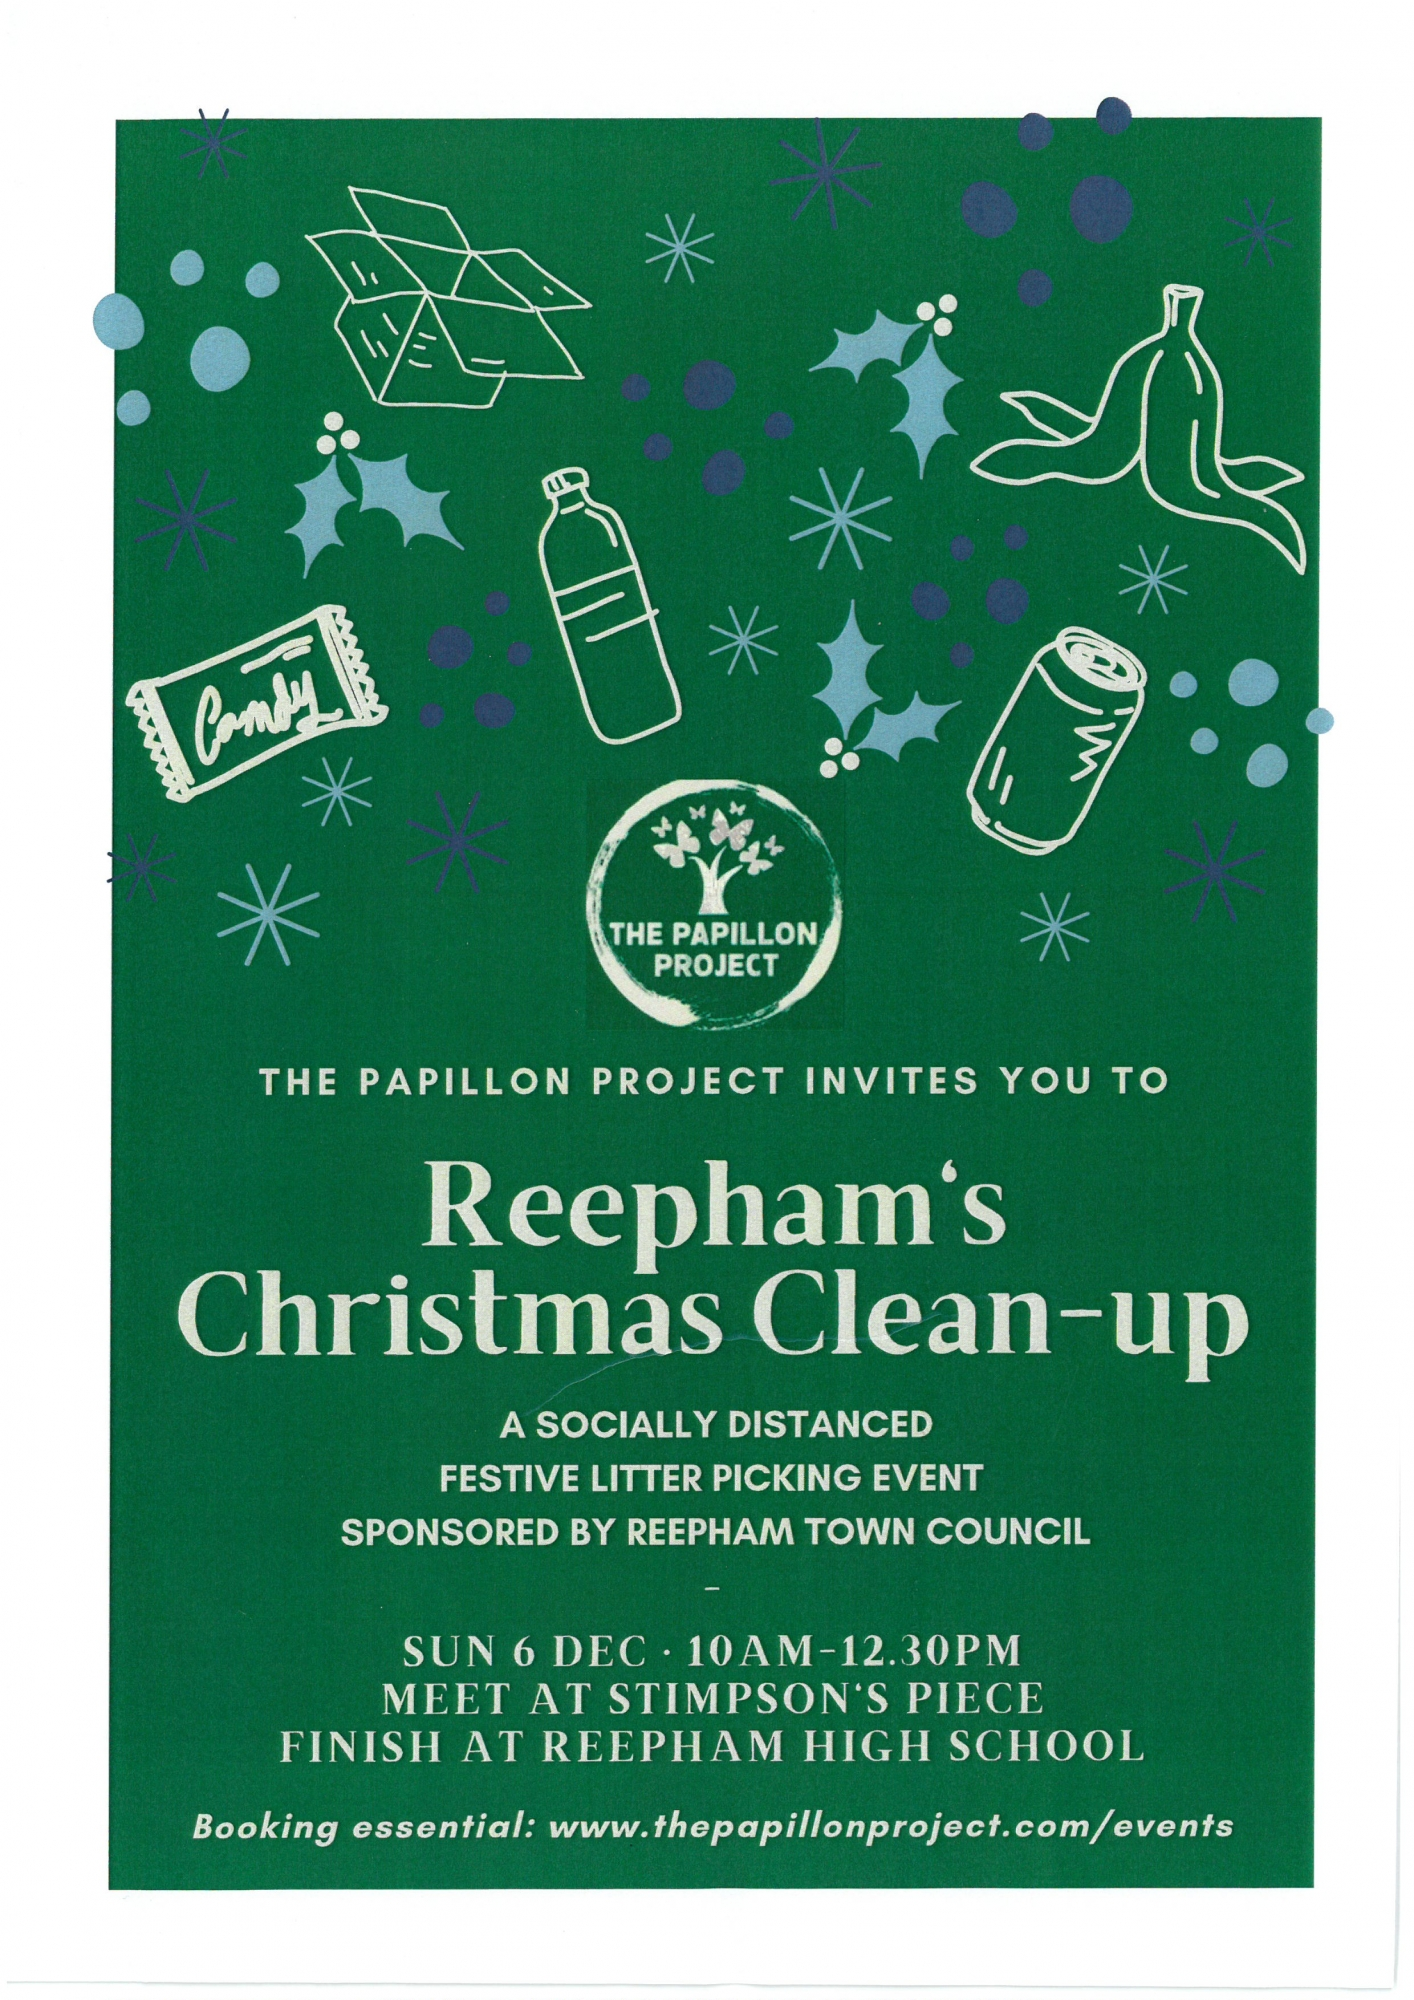 Reepham's Christmas Clean Up (002)